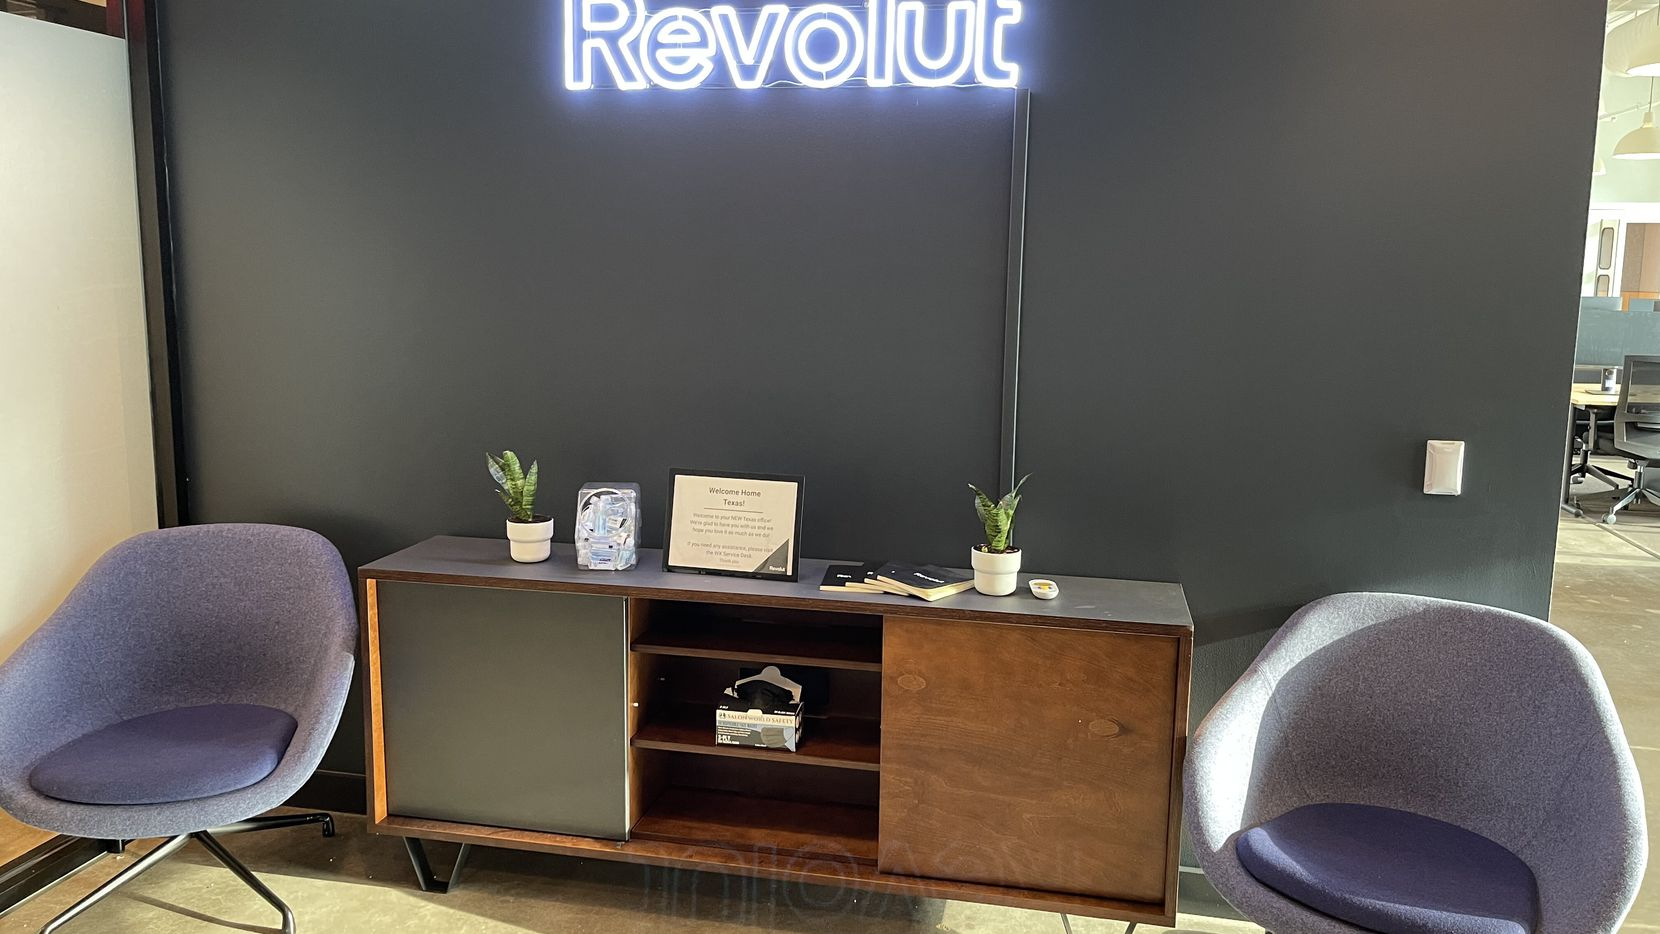 British fintech firm Revolut's 300-person WeWork office space on Dallas Parkway.